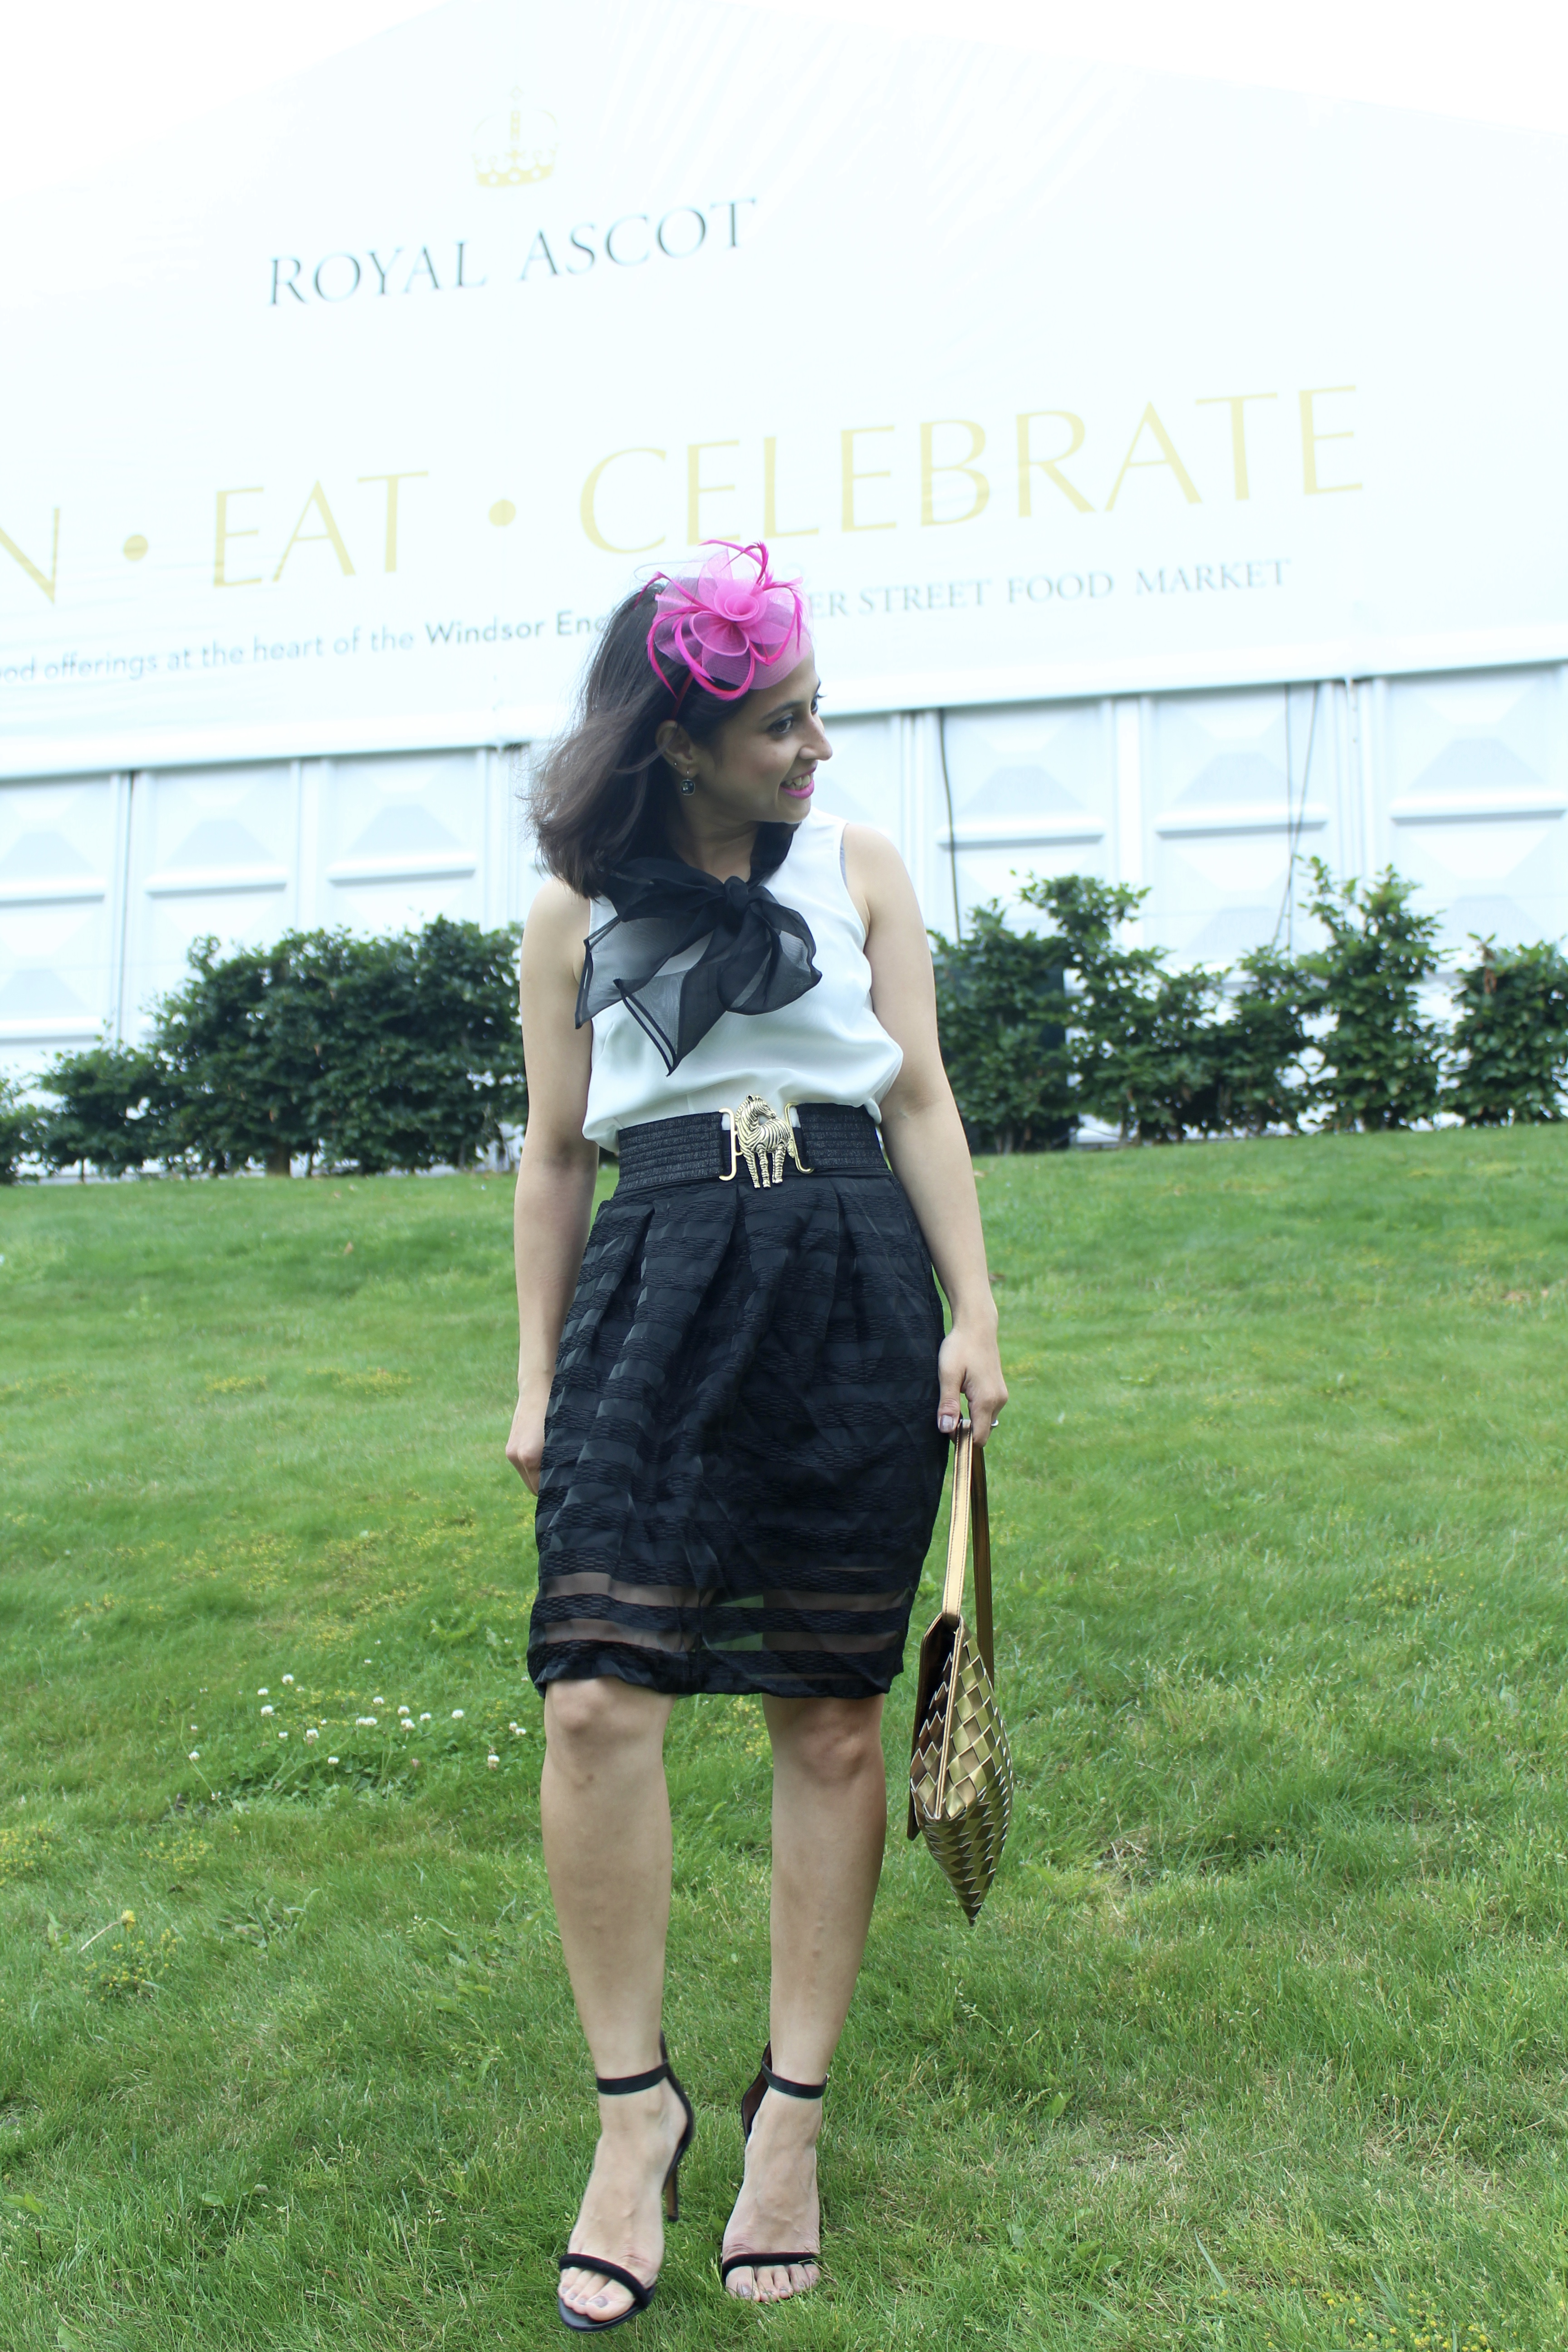 Royal Ascot horse racing fascinator